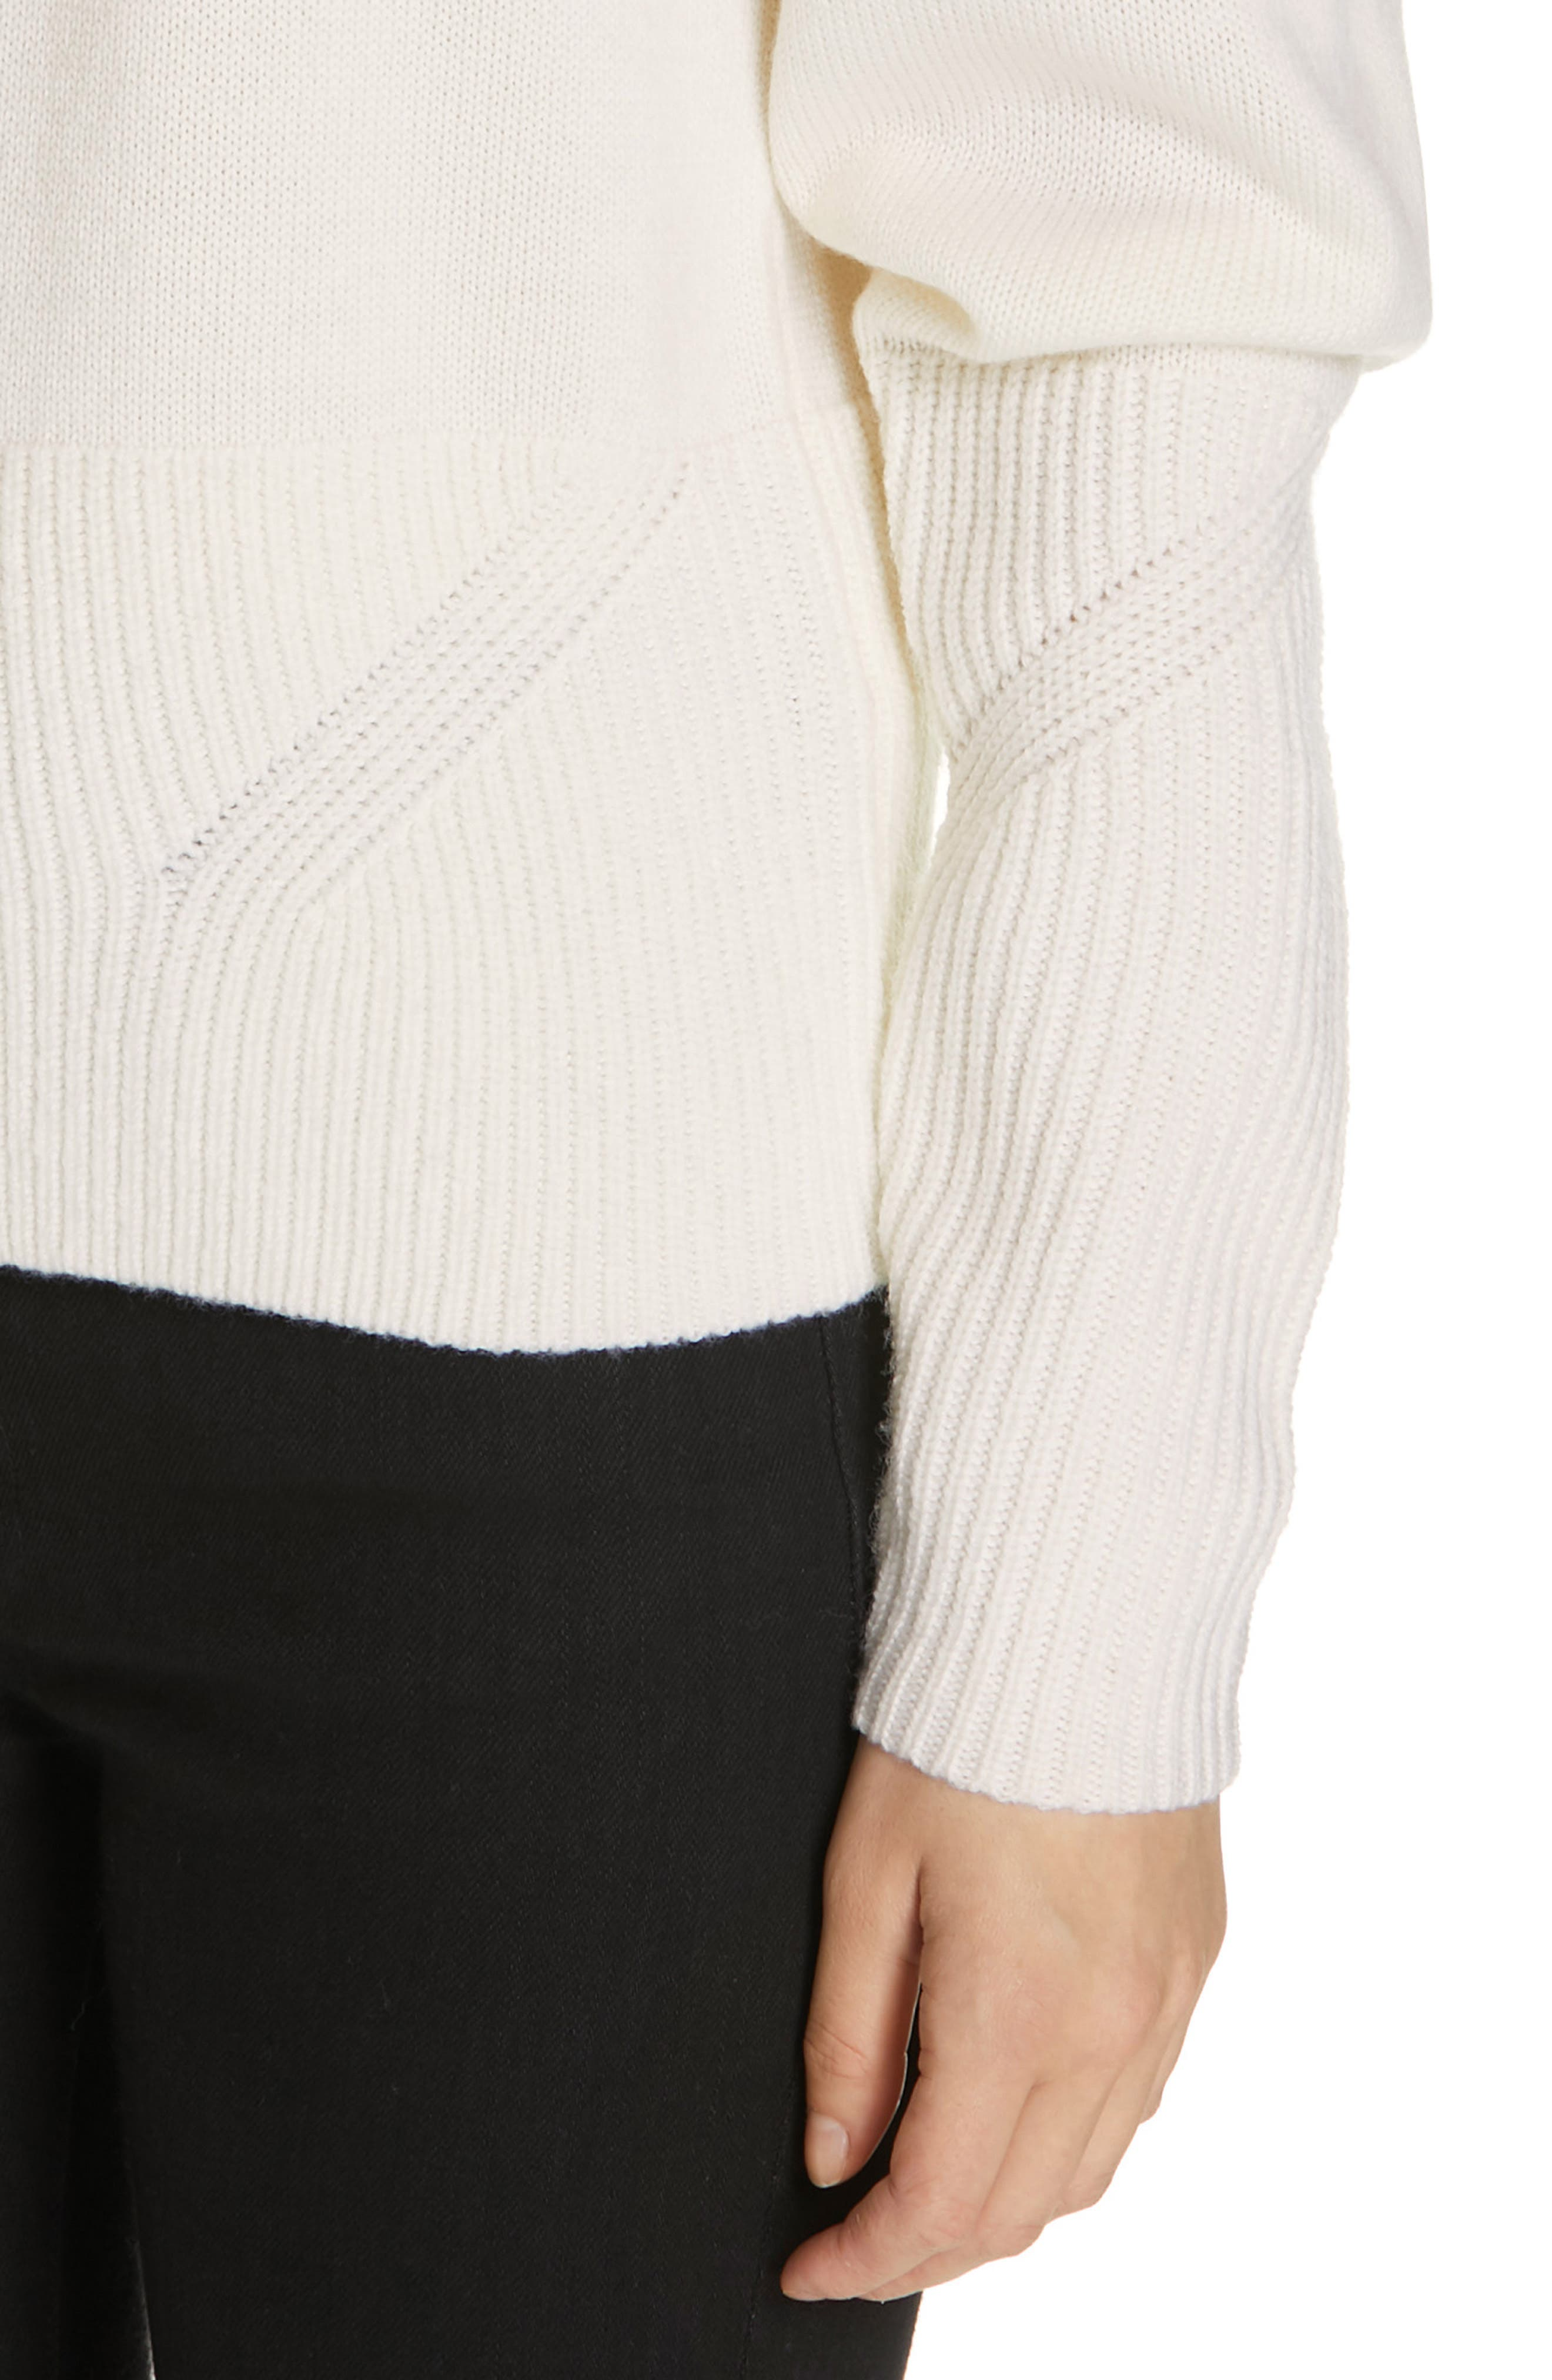 JOIE, Marquetta Sweater, Alternate thumbnail 4, color, 100